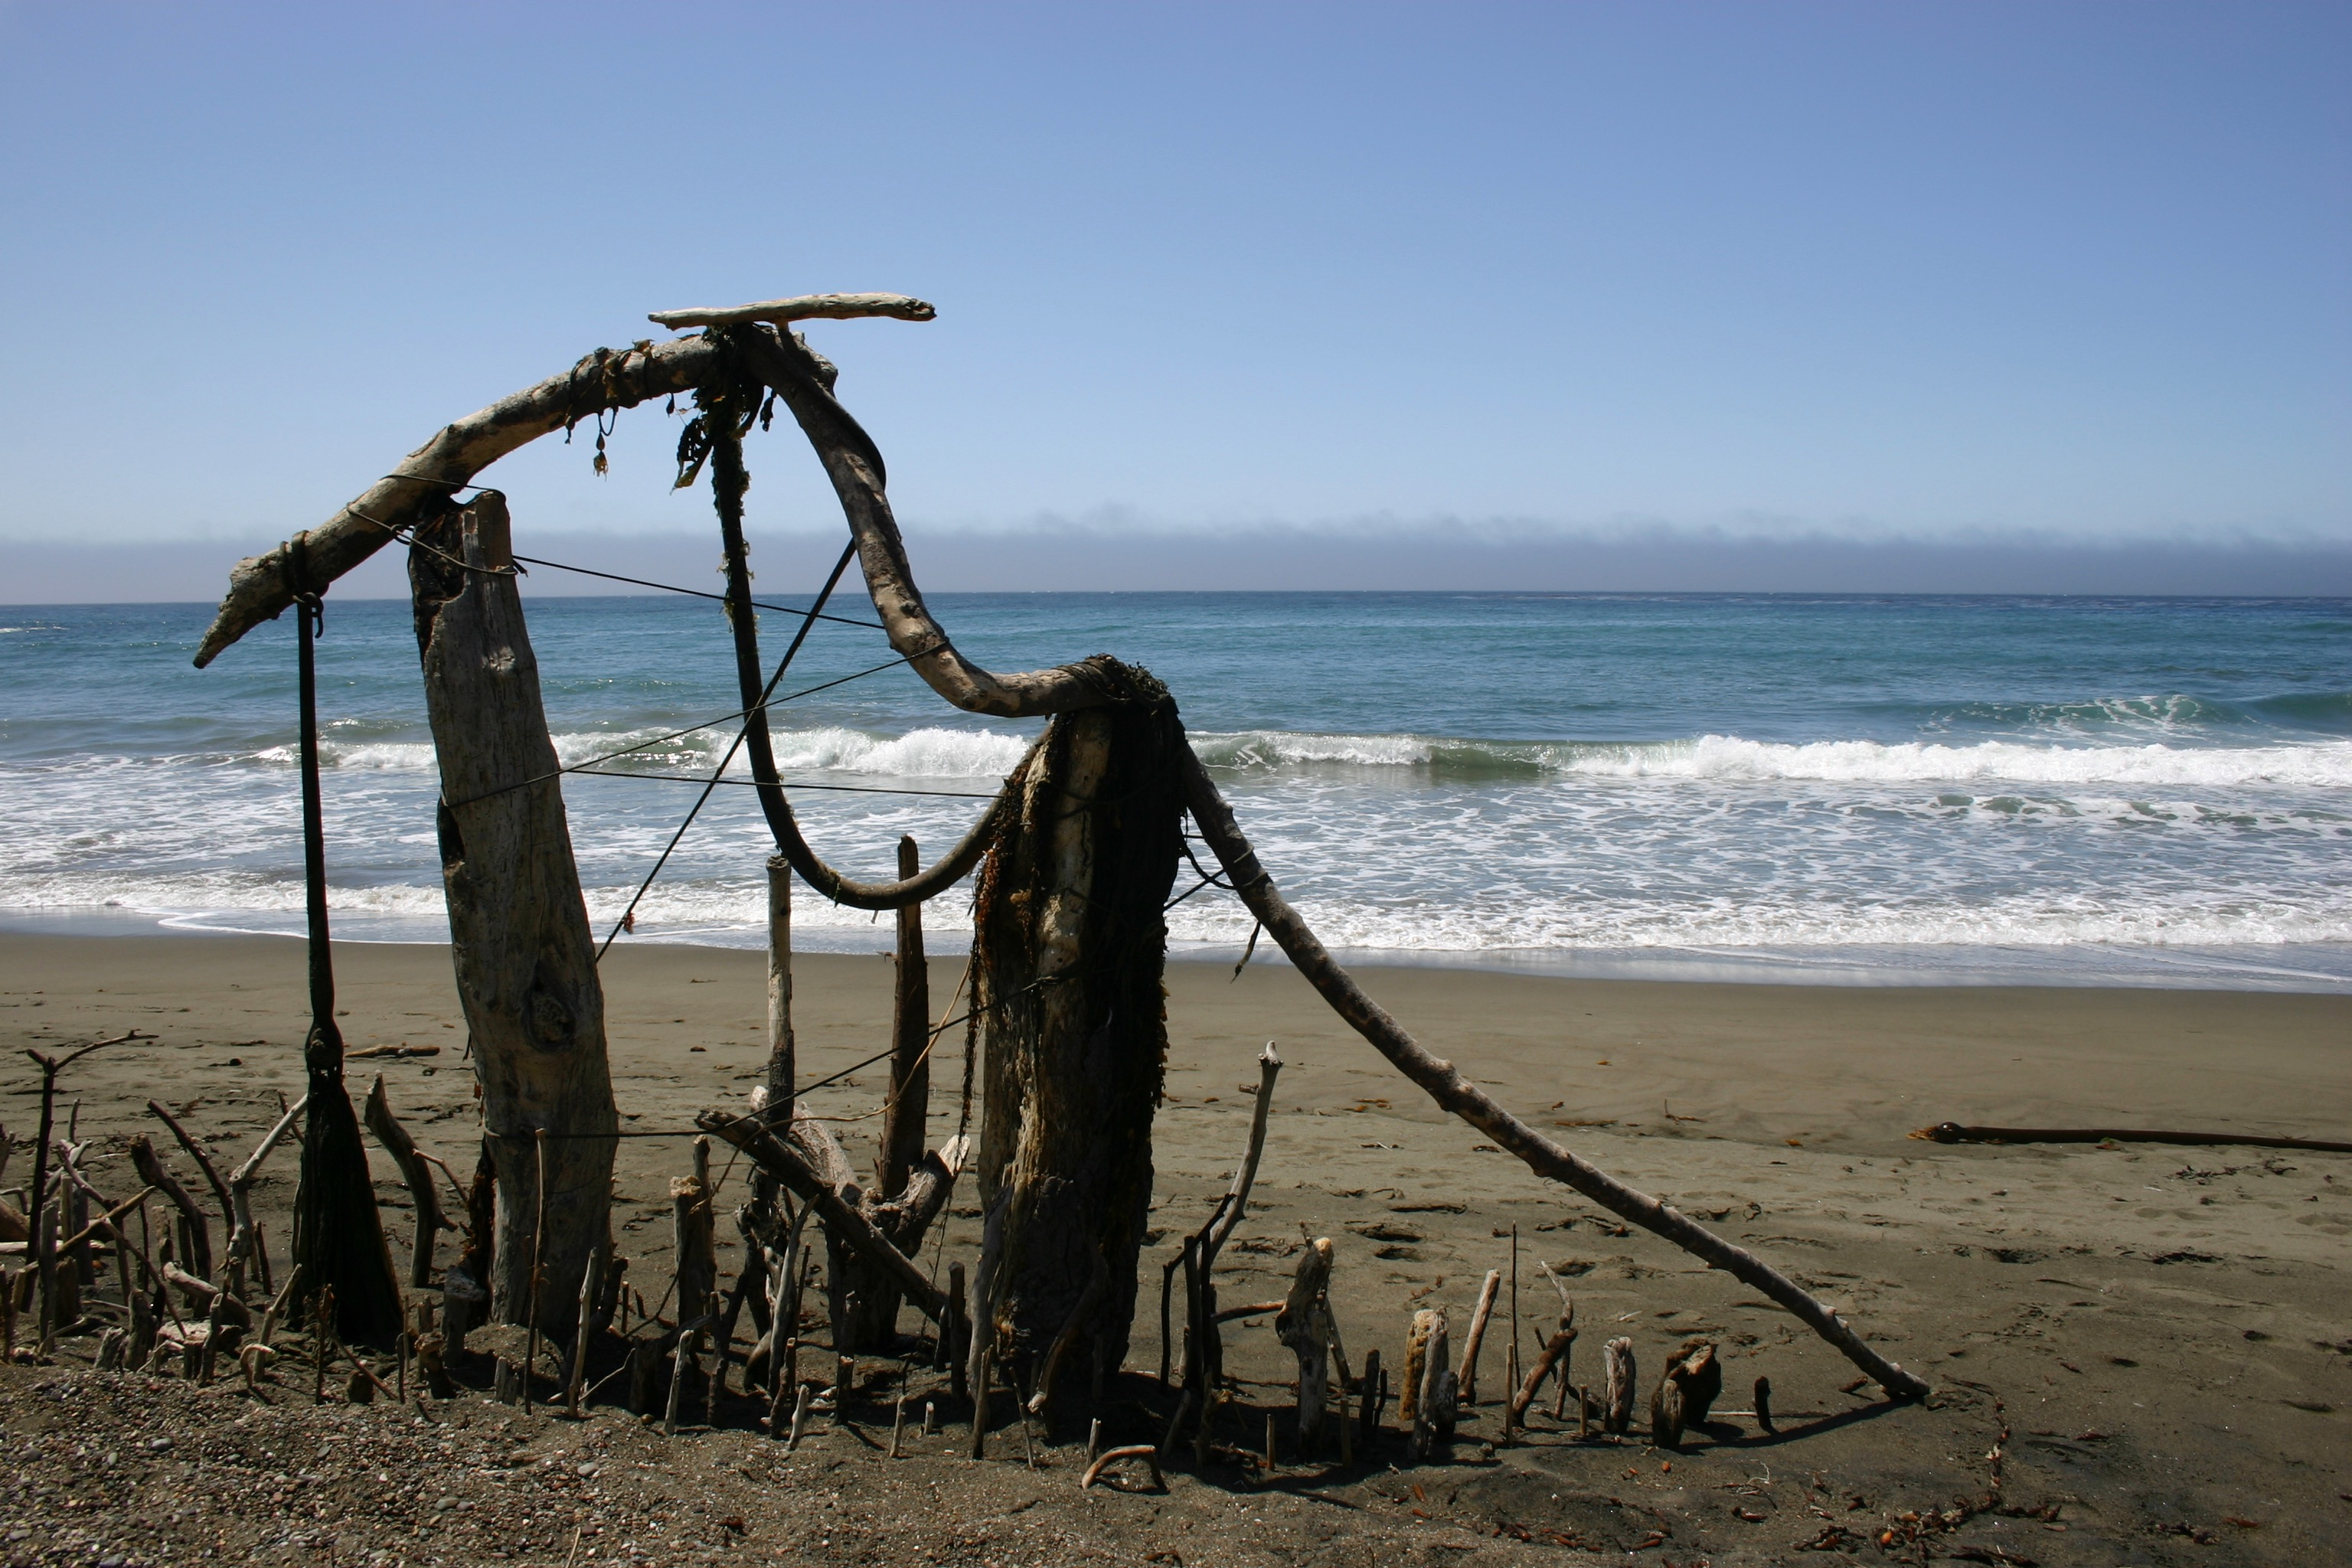 A fence constructed of driftwood, seaweed, and wire on the beach.